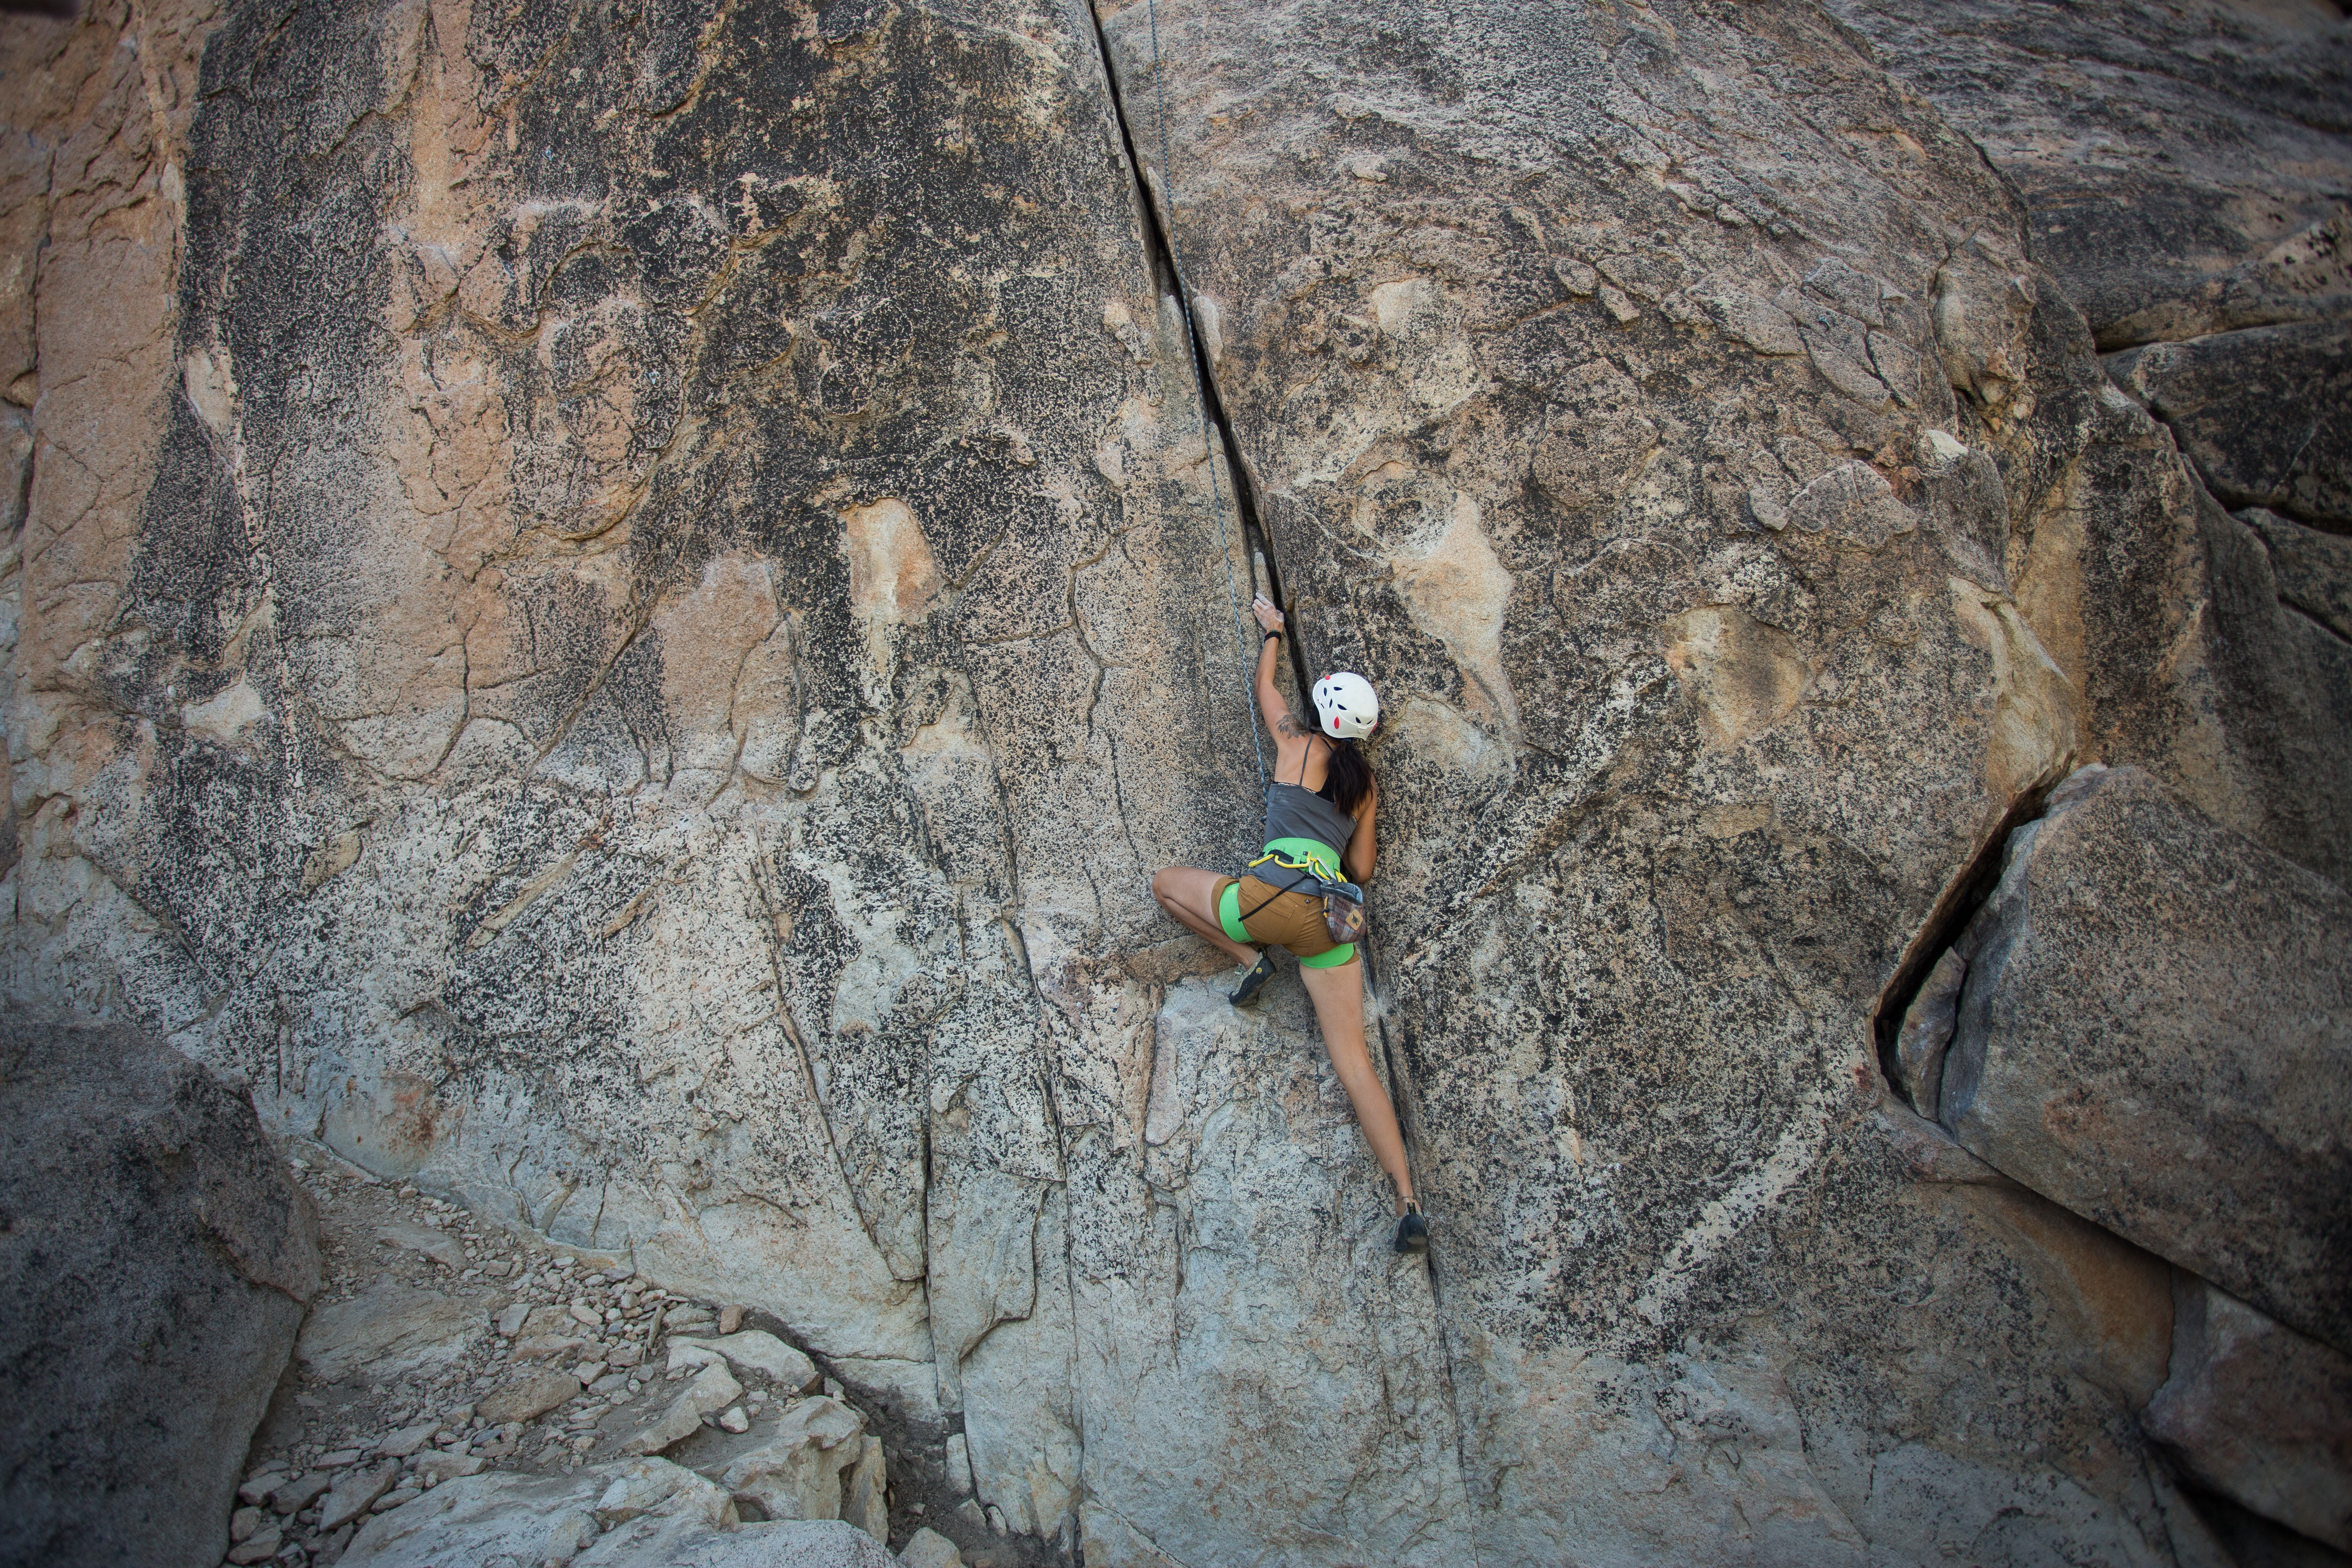 A woman wearing a white helmet and green shorts rock climbing the side of a mountain in Big Bear Lake